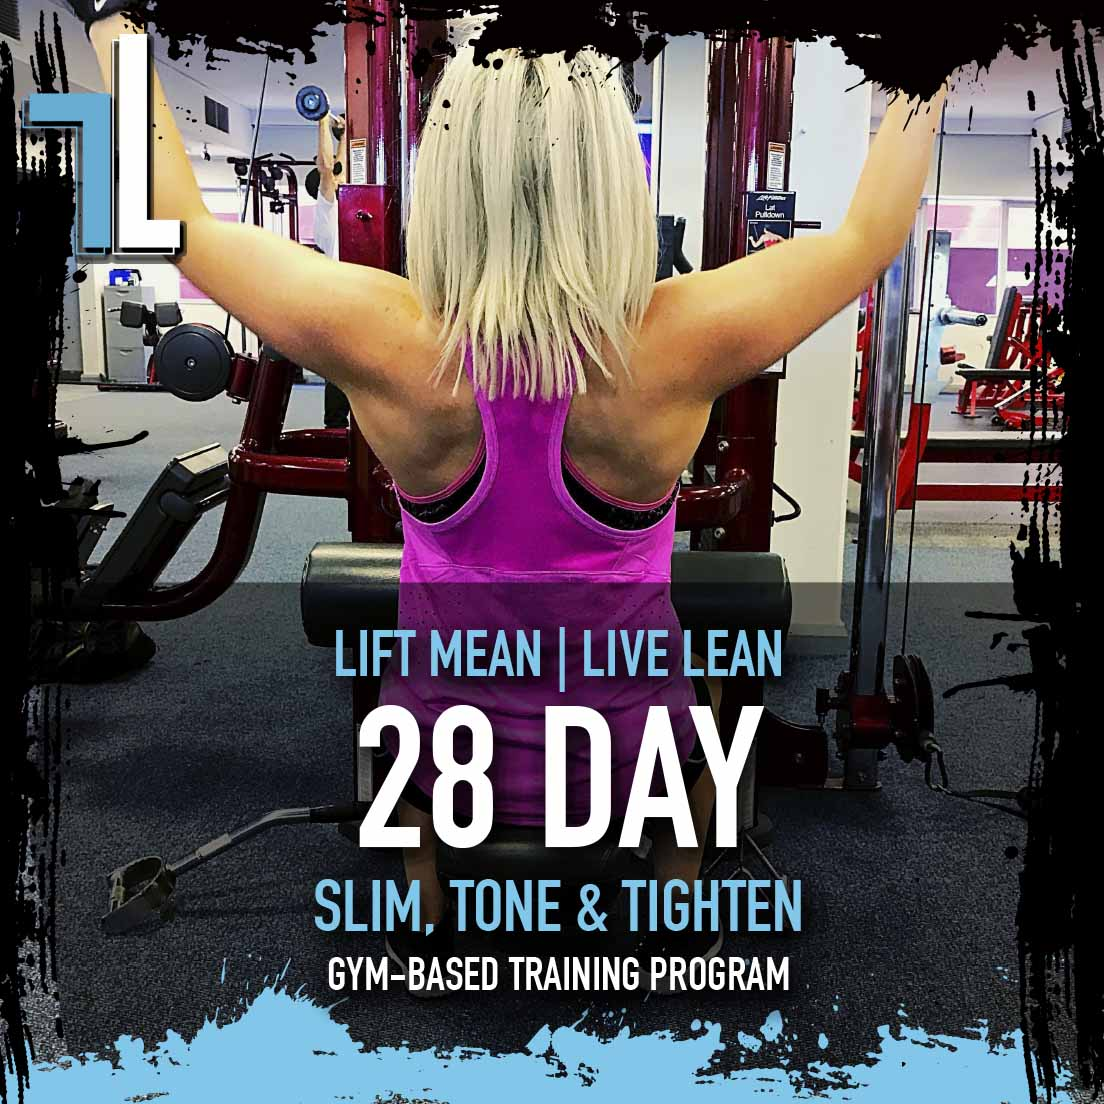 28 DAY GYM TRAINING PROGRAM